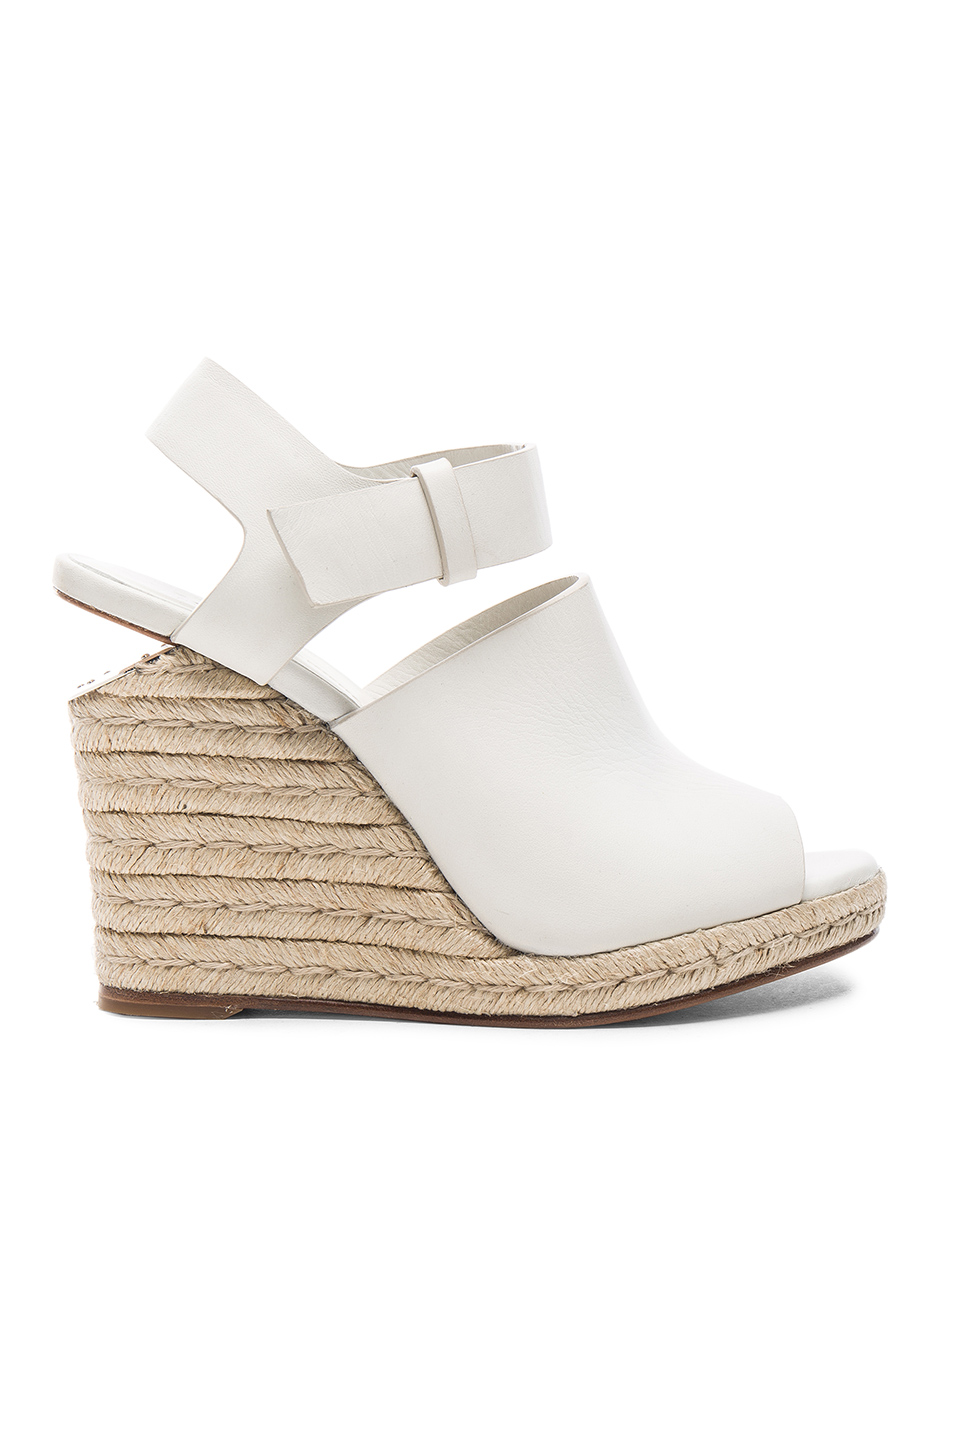 Leather Sandals With Raffia Wedges in Milk